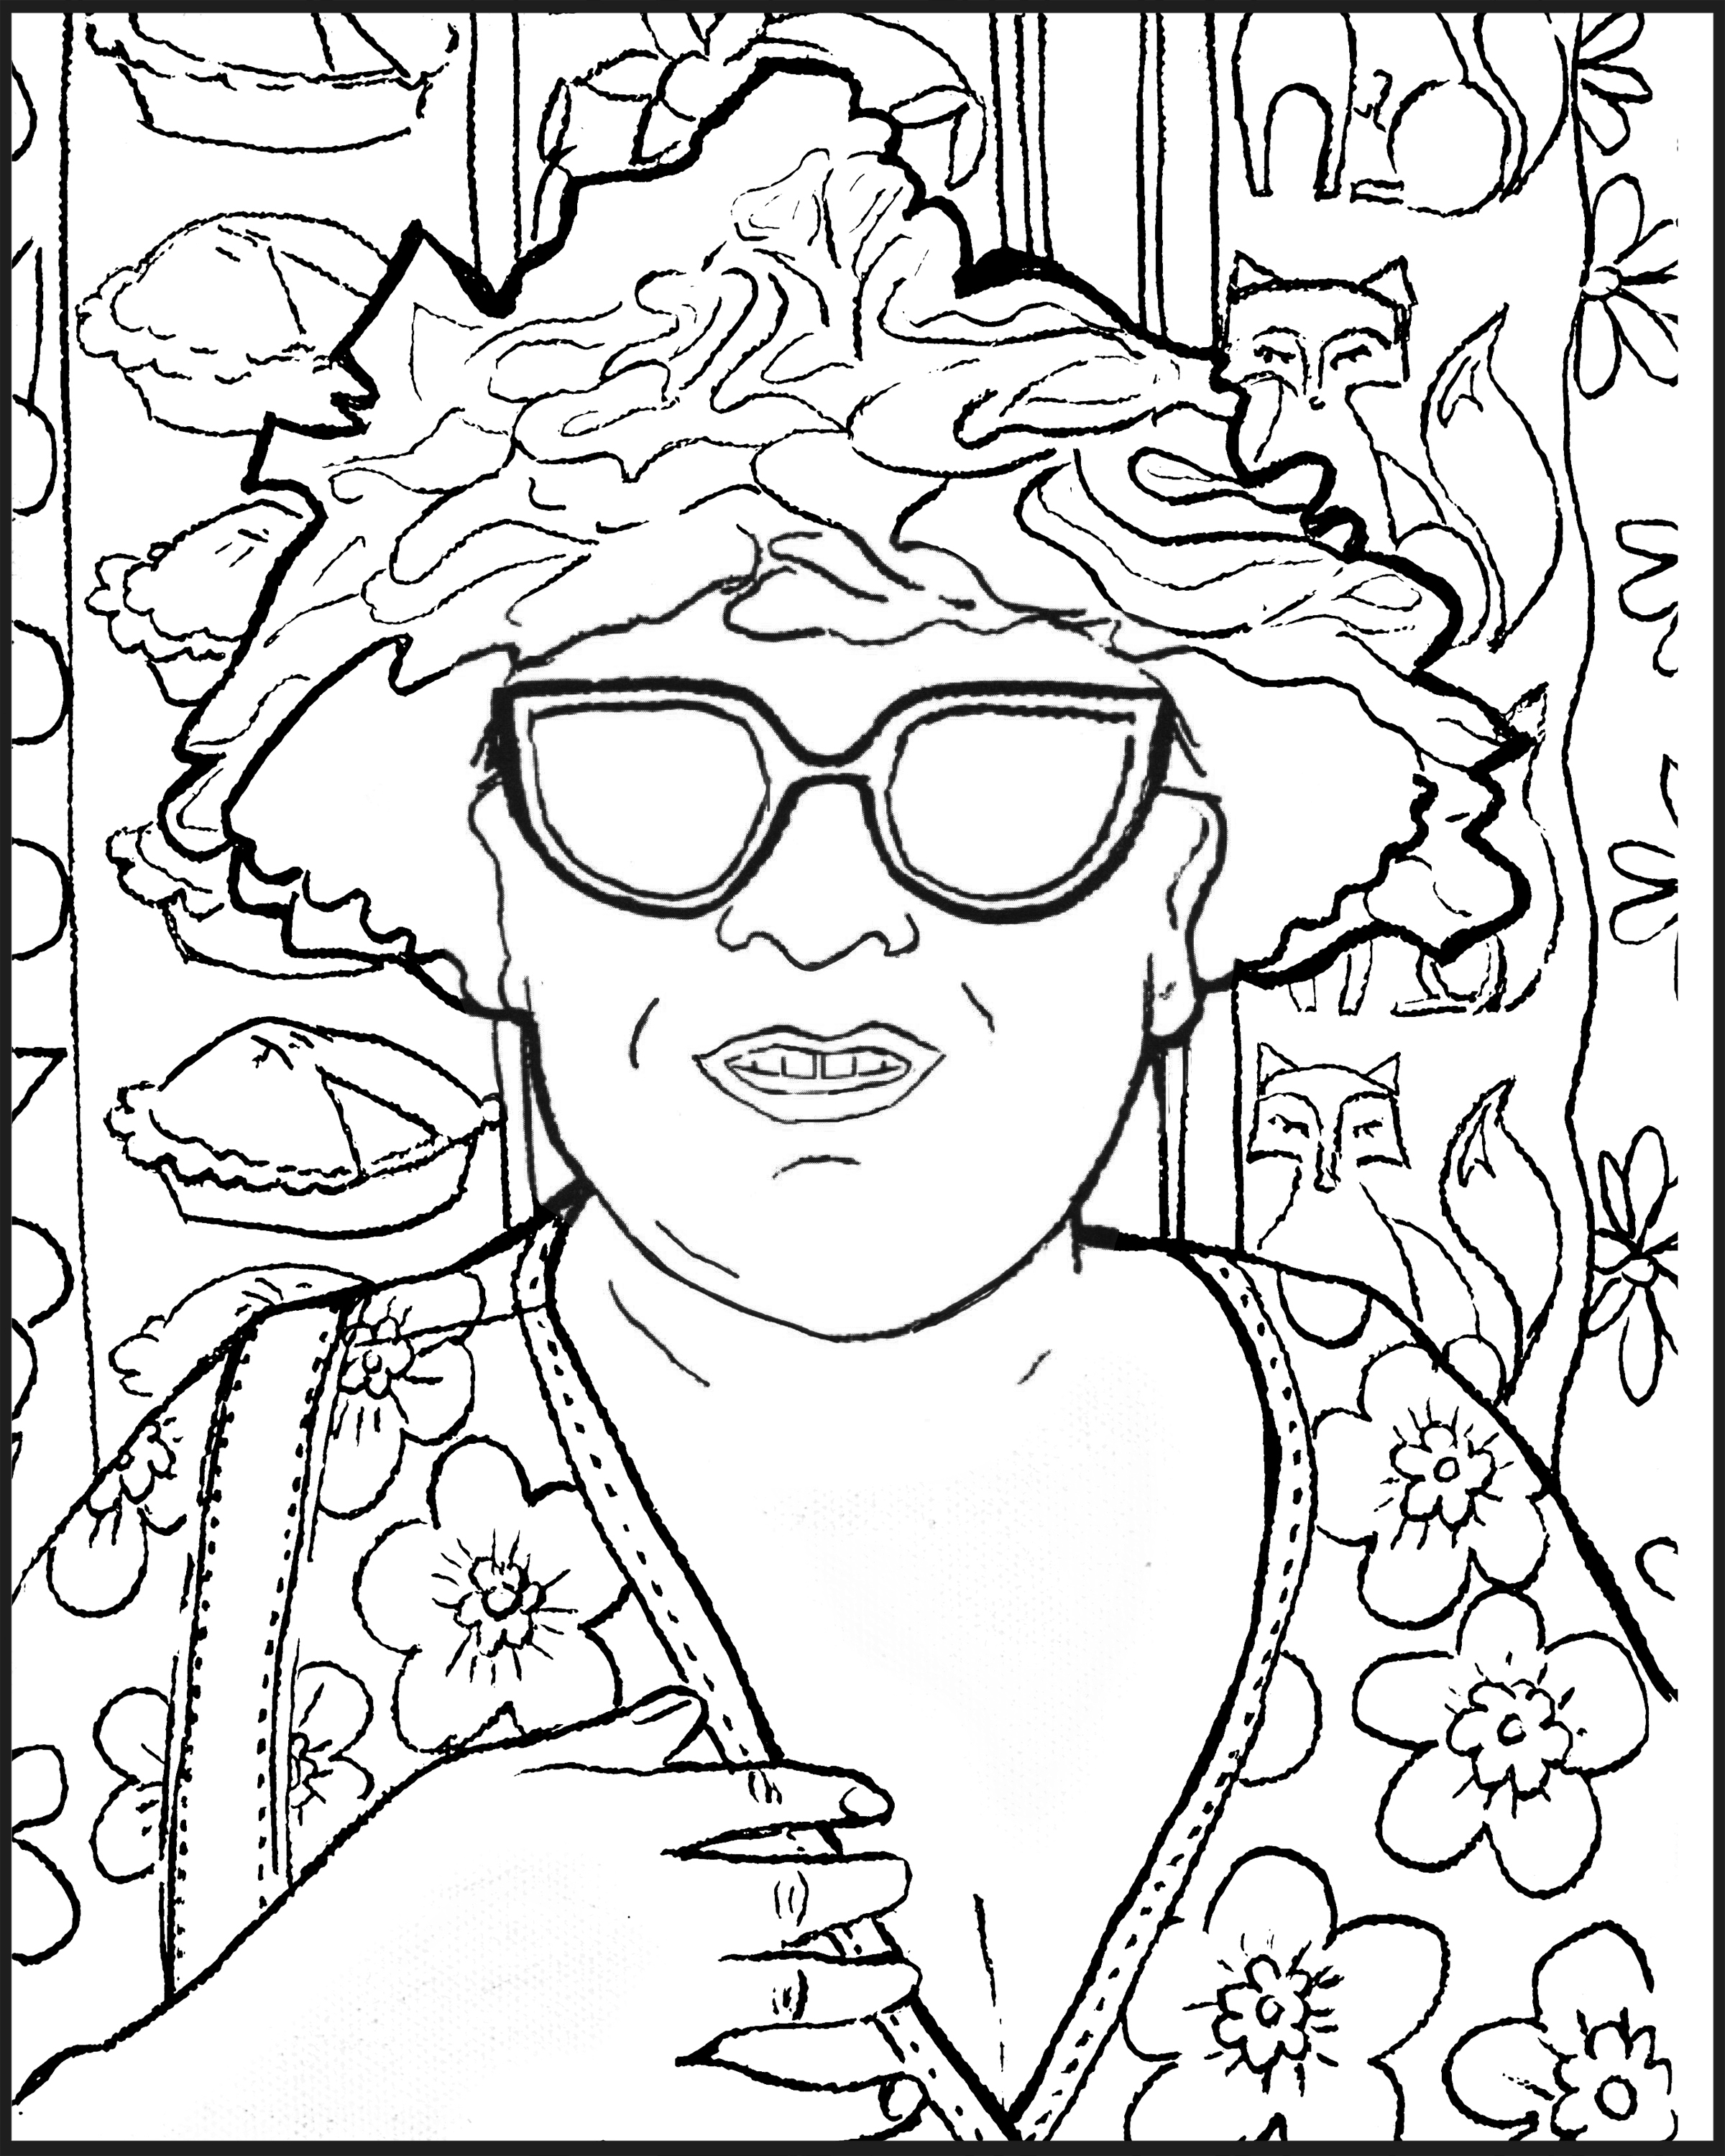 Be a coloring page!